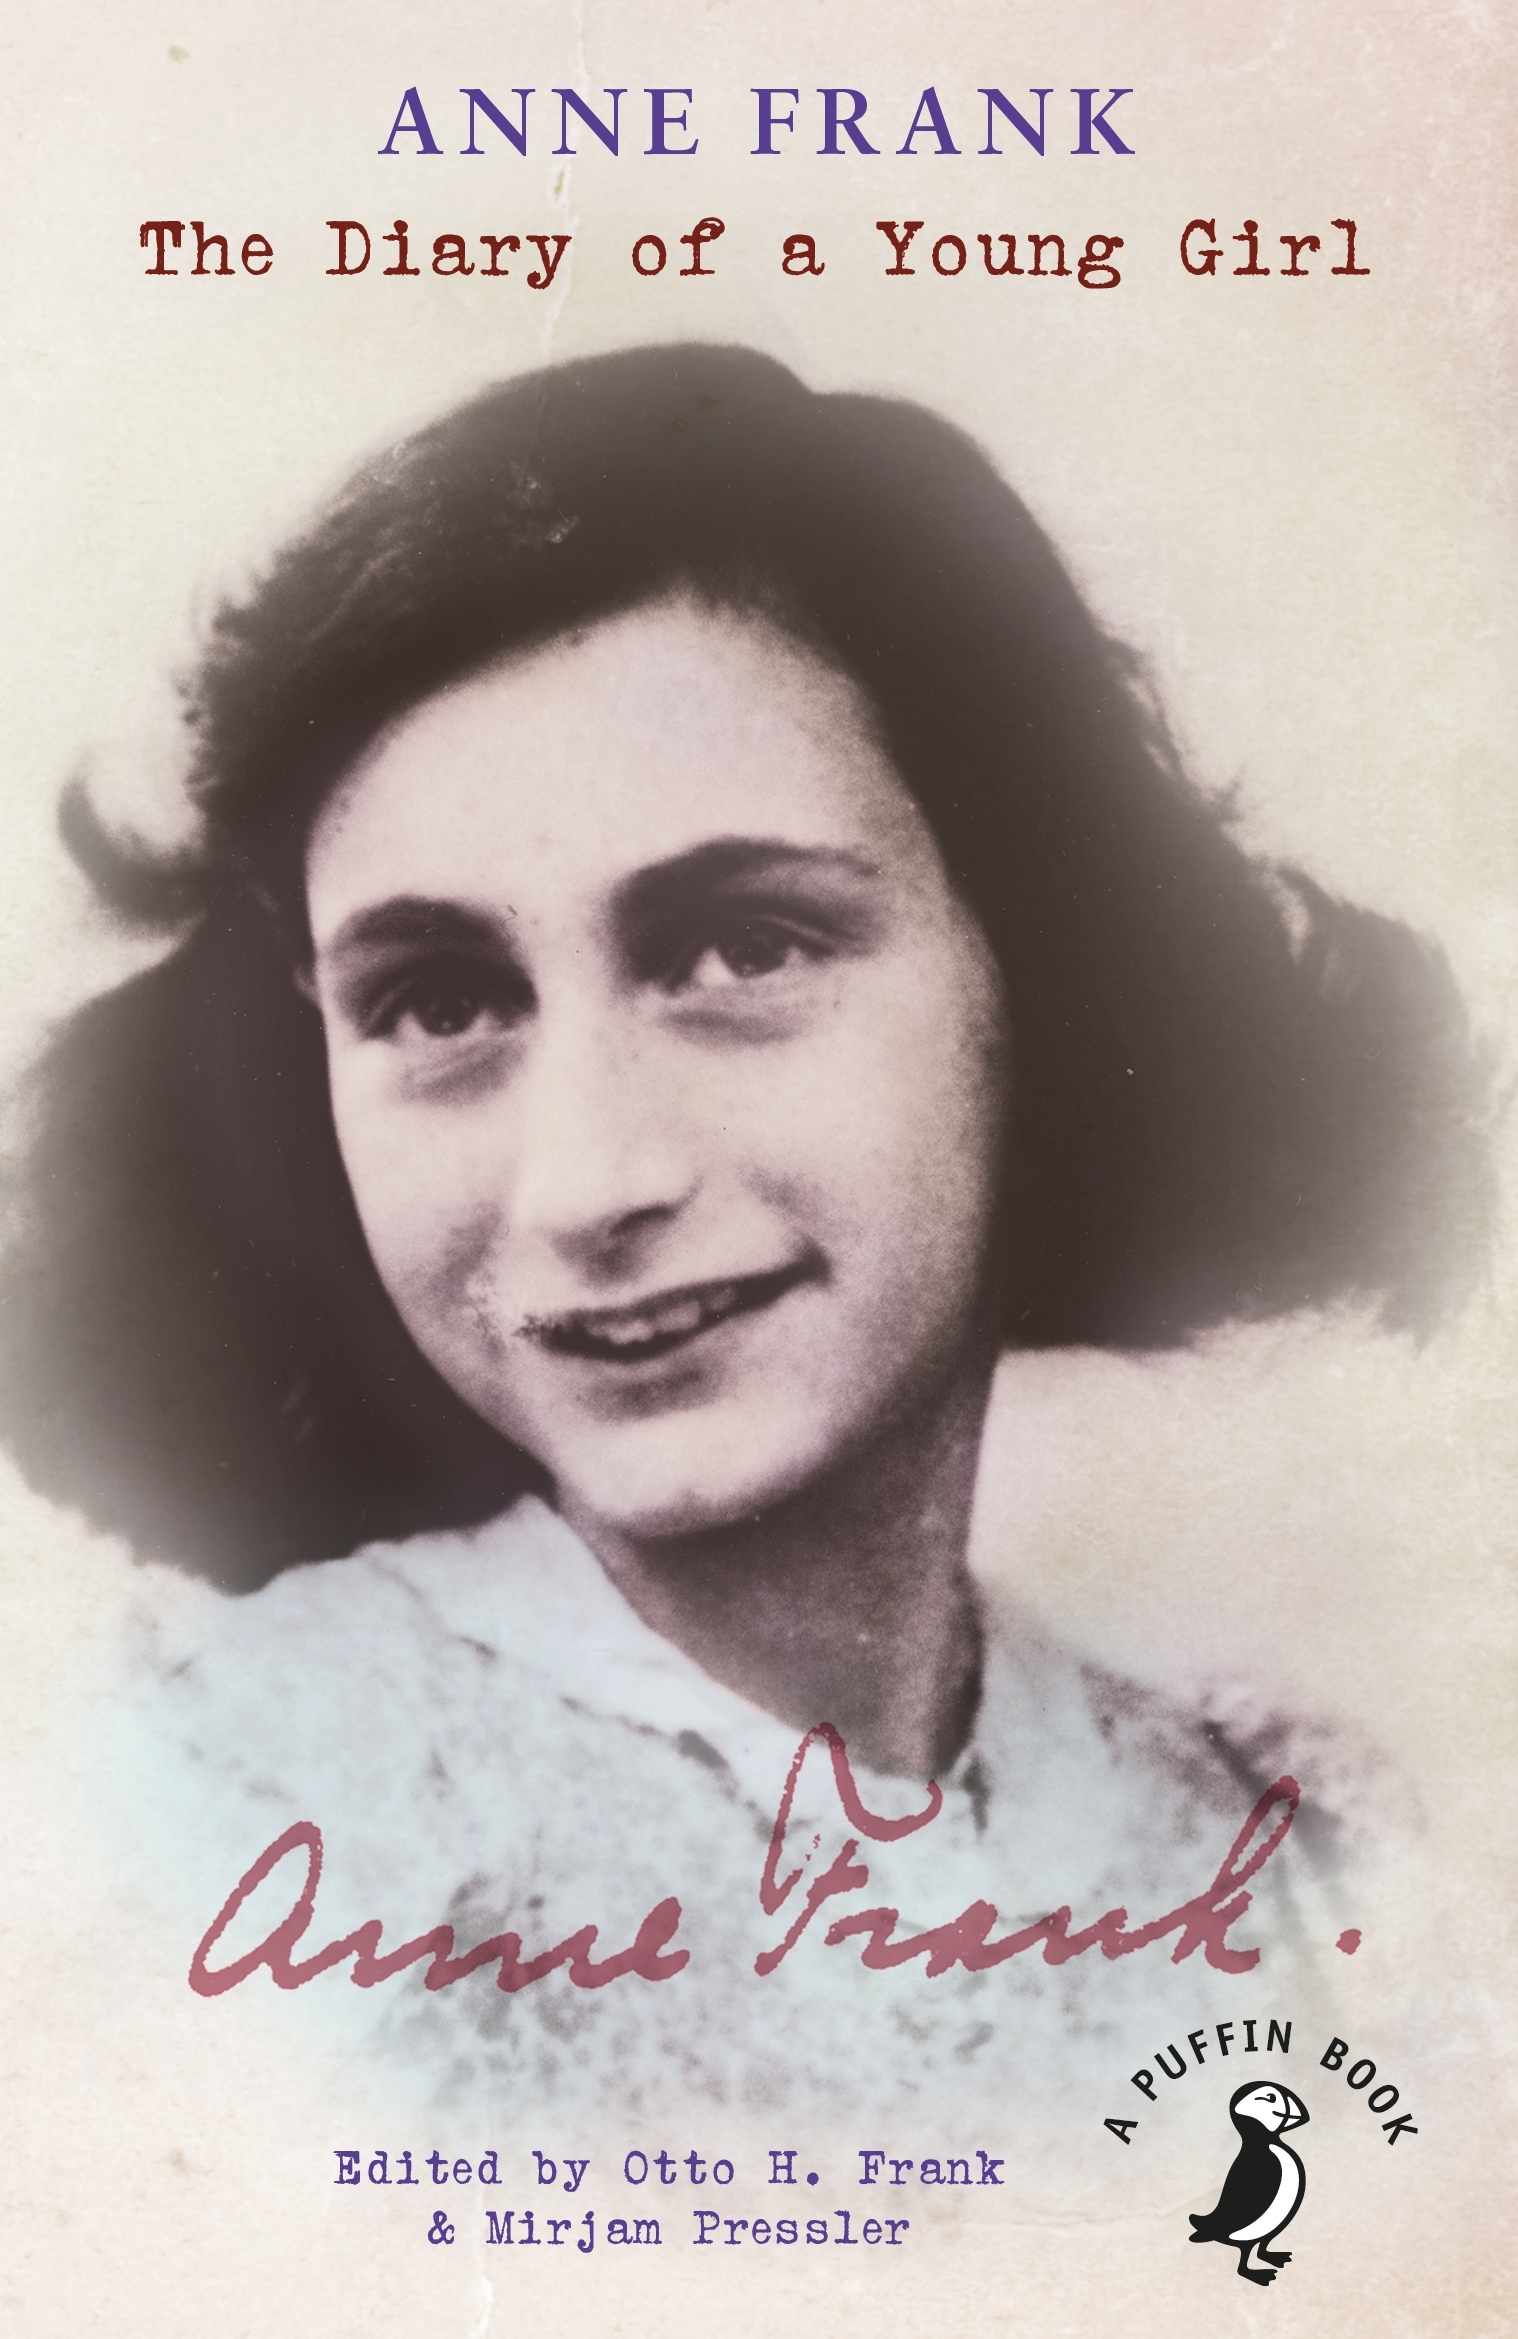 an analysis of the diary of a young girl by anne frank Also includes a summary of the document examination and handwriting identification analysis completed in 1986 by the  anne and anne frank: diary of a young girl.